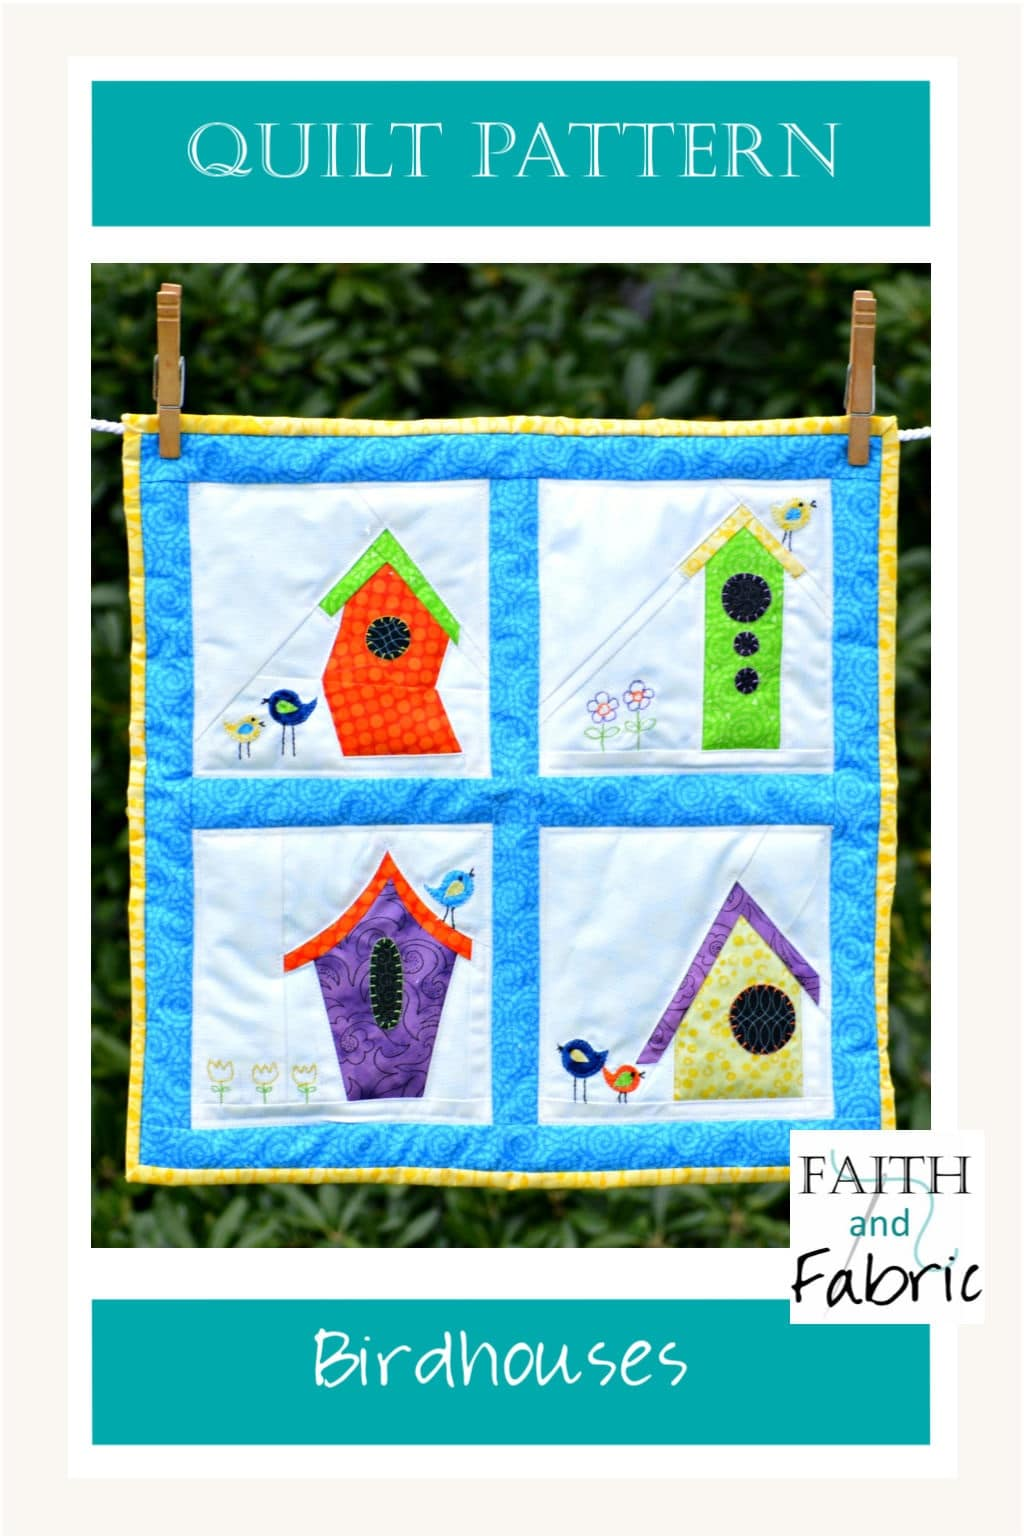 Do you love birds, or know someone who does? This bird and birdhouse quilt makes the perfect mini quilt! Created by Faith and Fabric